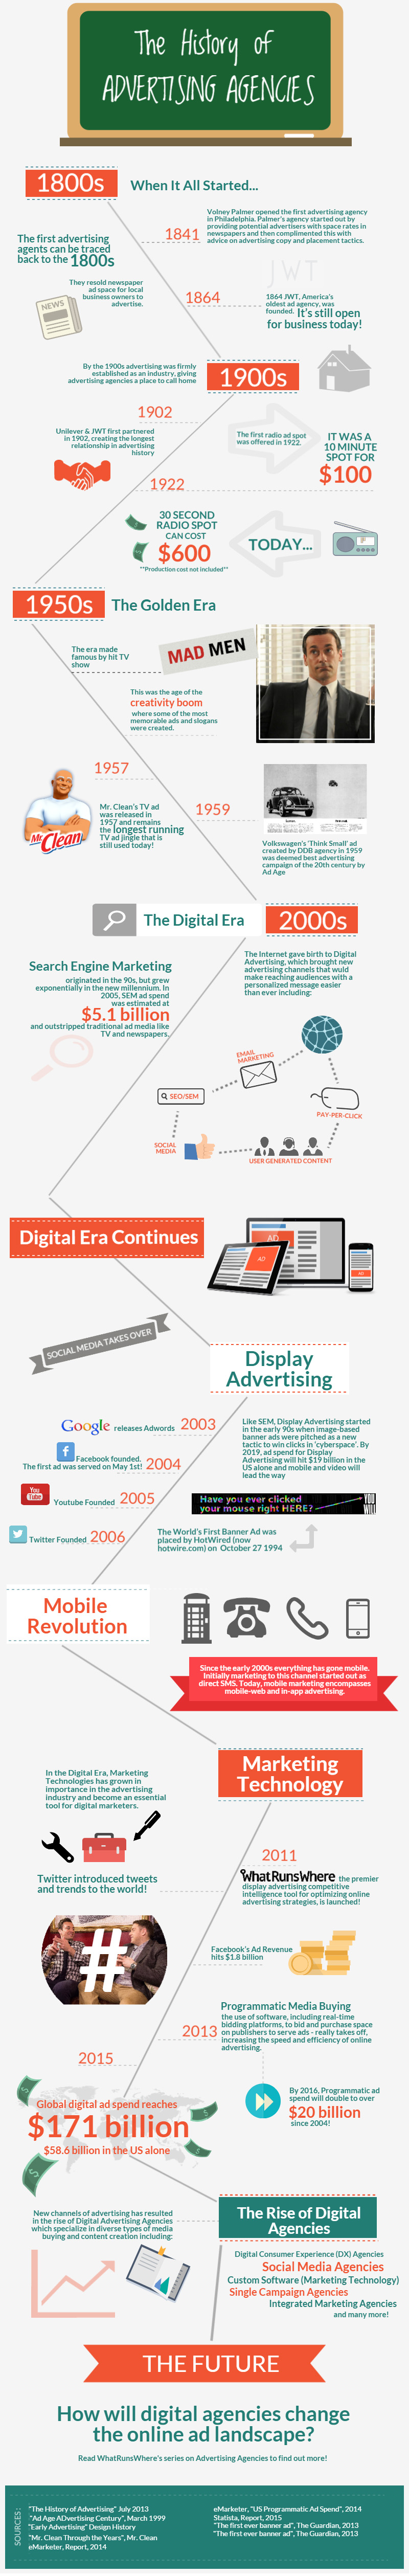 Digital-Agencies-Timeline